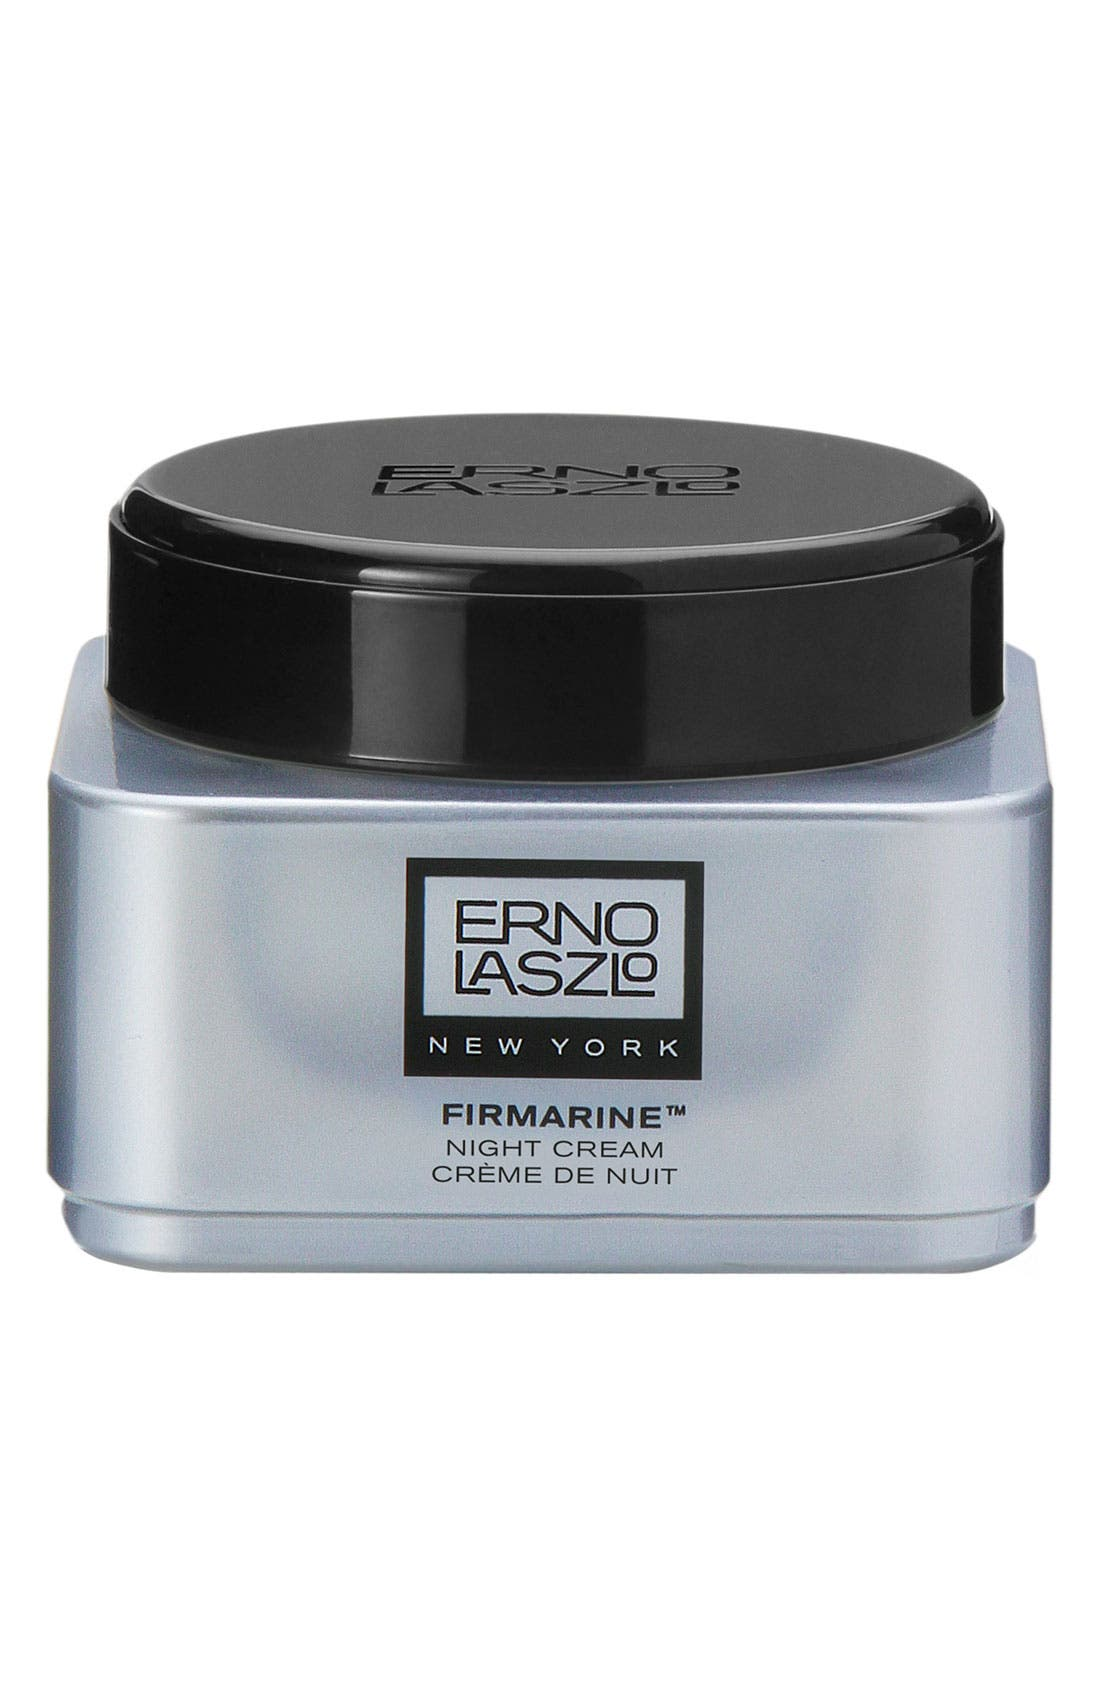 Erno Laszlo Blue 'Firmarine' Night Cream